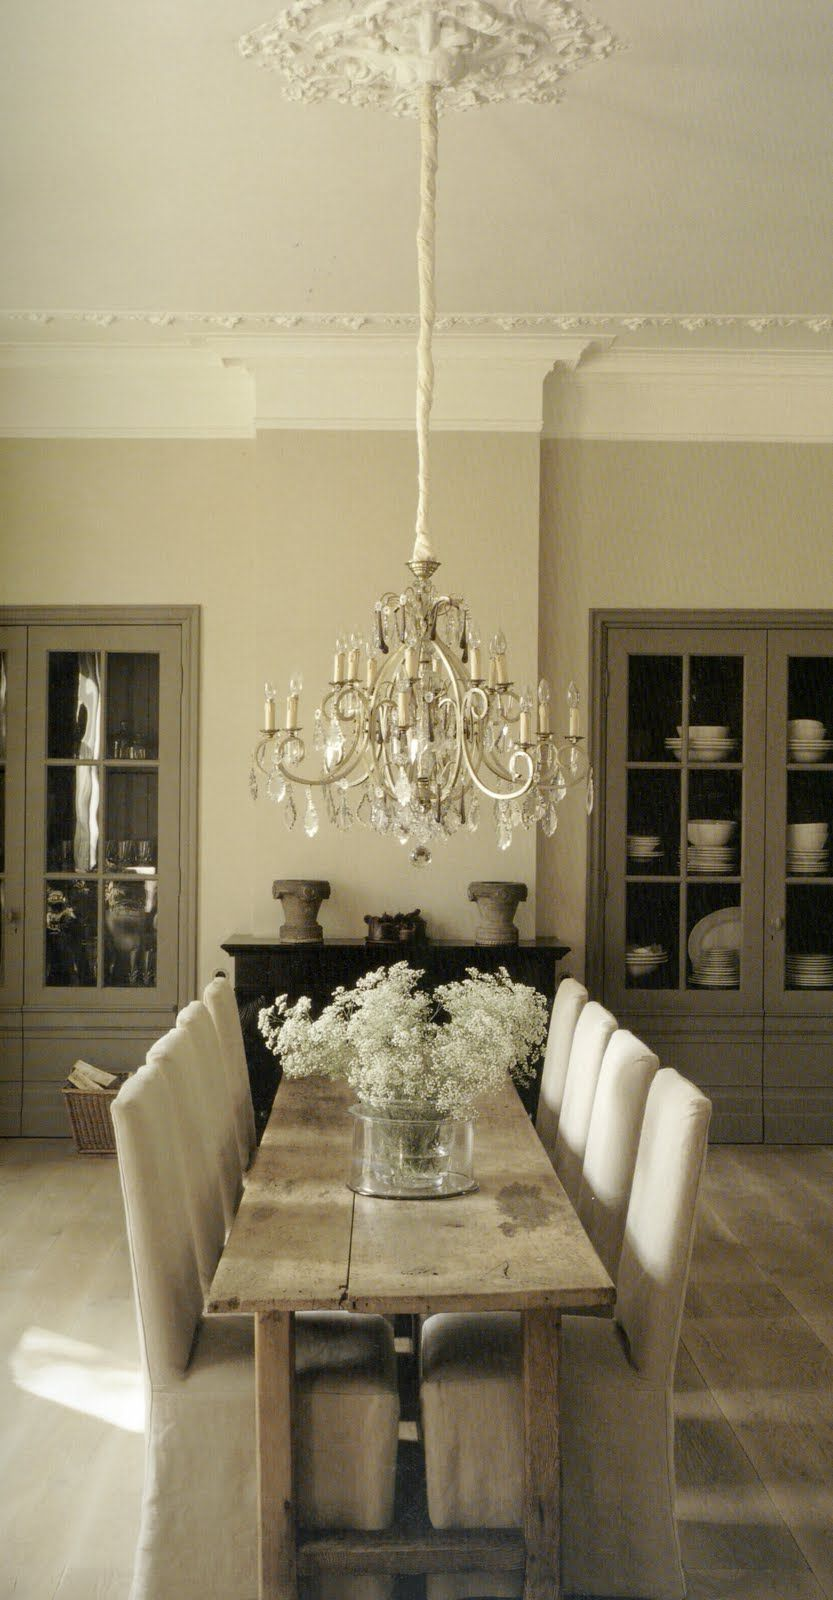 Simple country dining room ideas - Simple Yet Elegant Dining Room The Crown Molding Medallion Crystal Chandelier Are Gorgeous Unfinished Wood Plank Table Is Innovative Clever And Makes